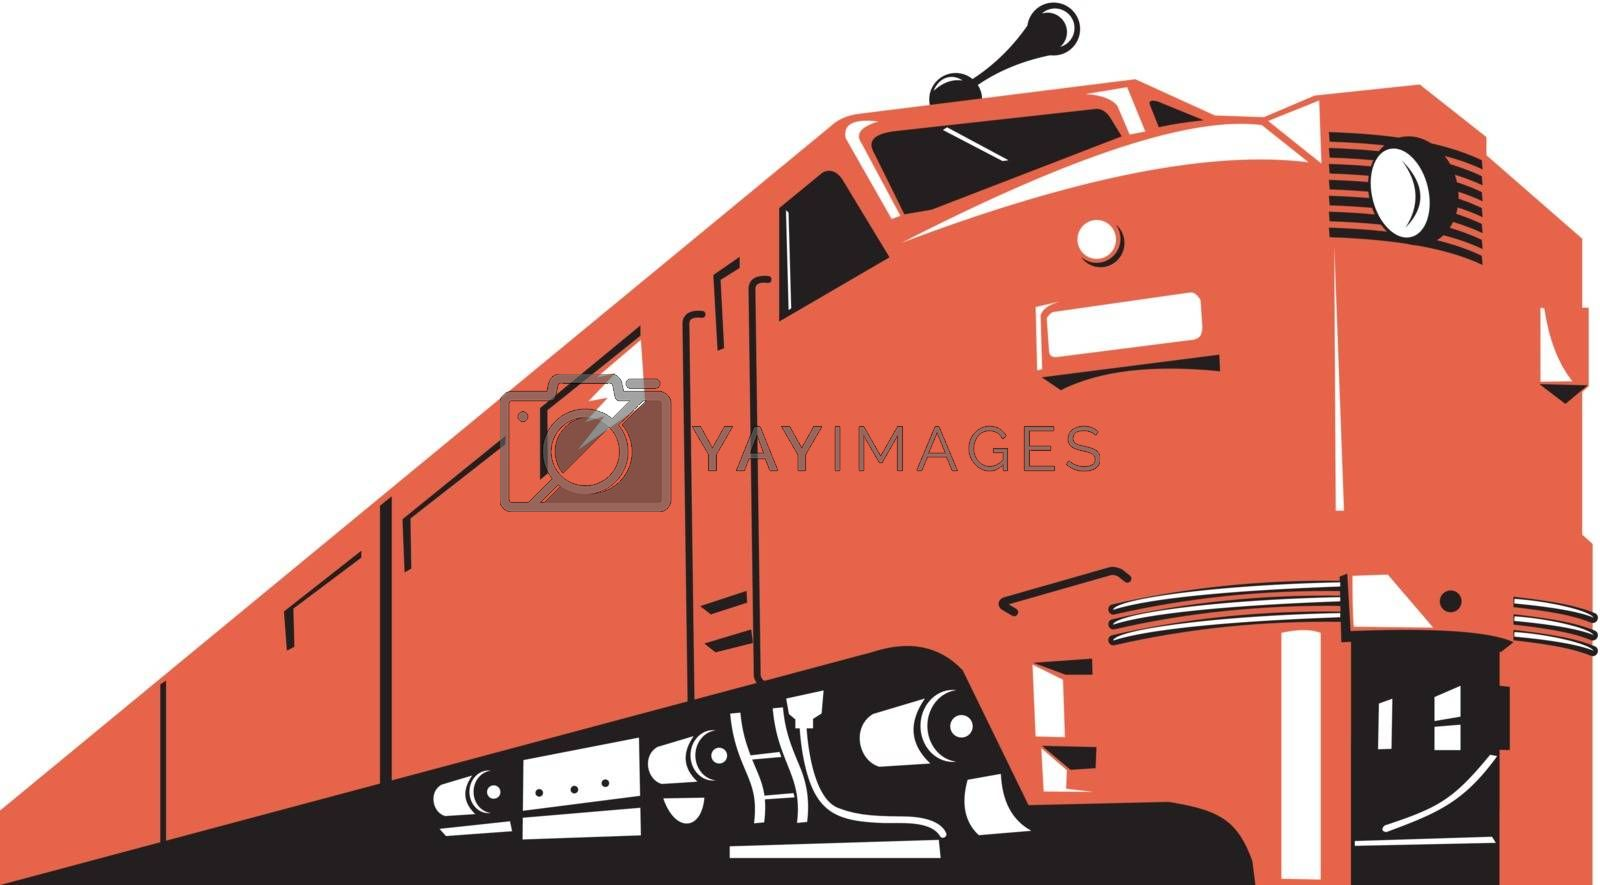 Illustration of a diesel train viewed from a high angle done in retro style on isolated white background.